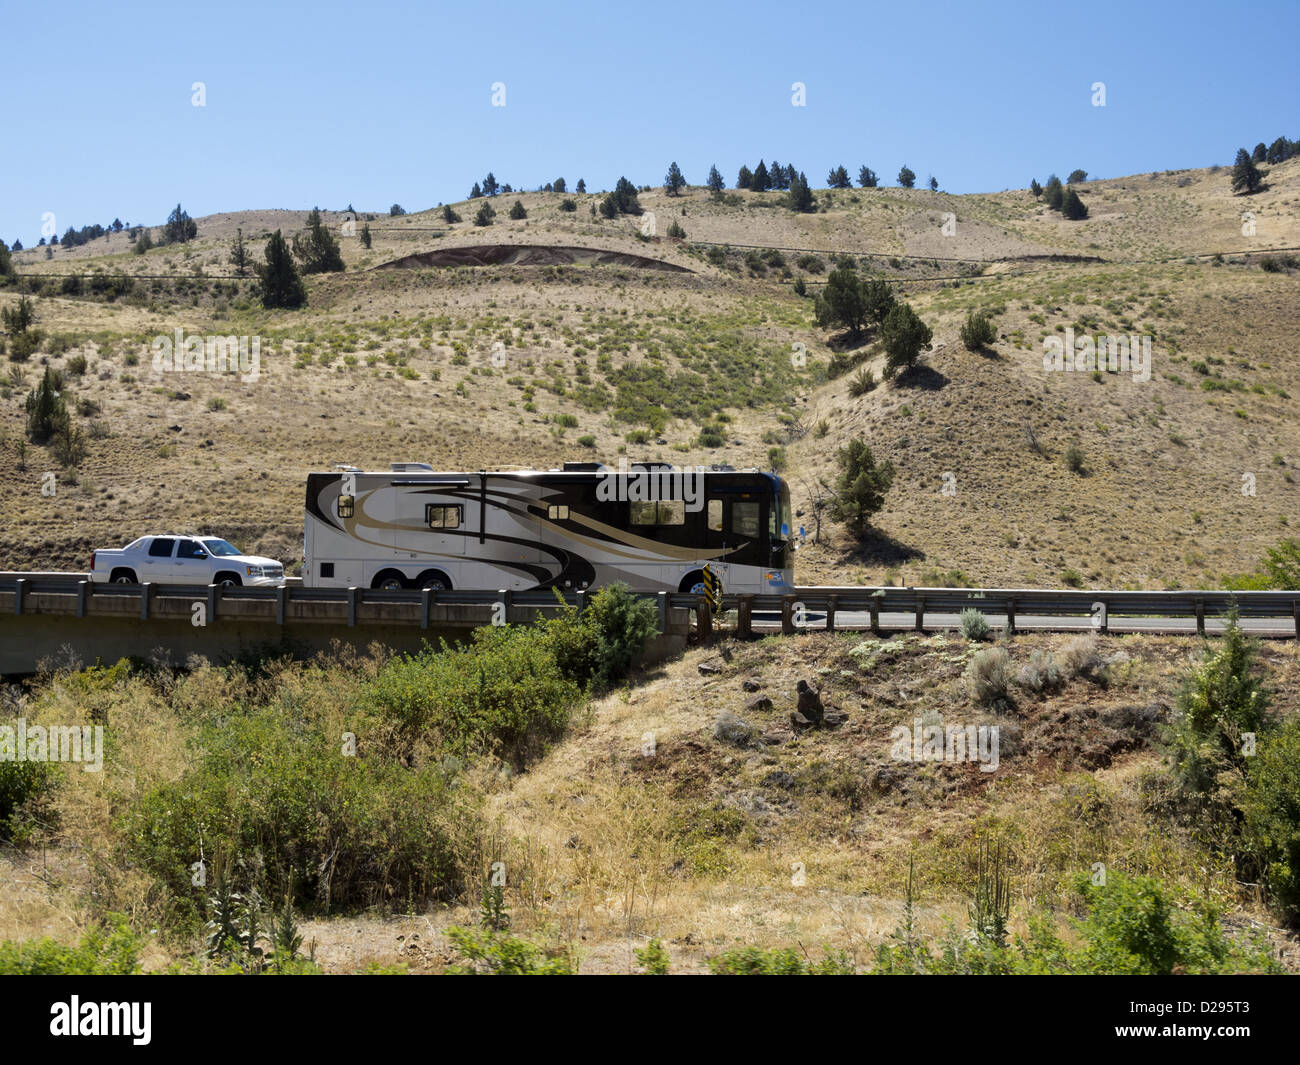 Rv Towing Stock Photos Amp Rv Towing Stock Images Alamy